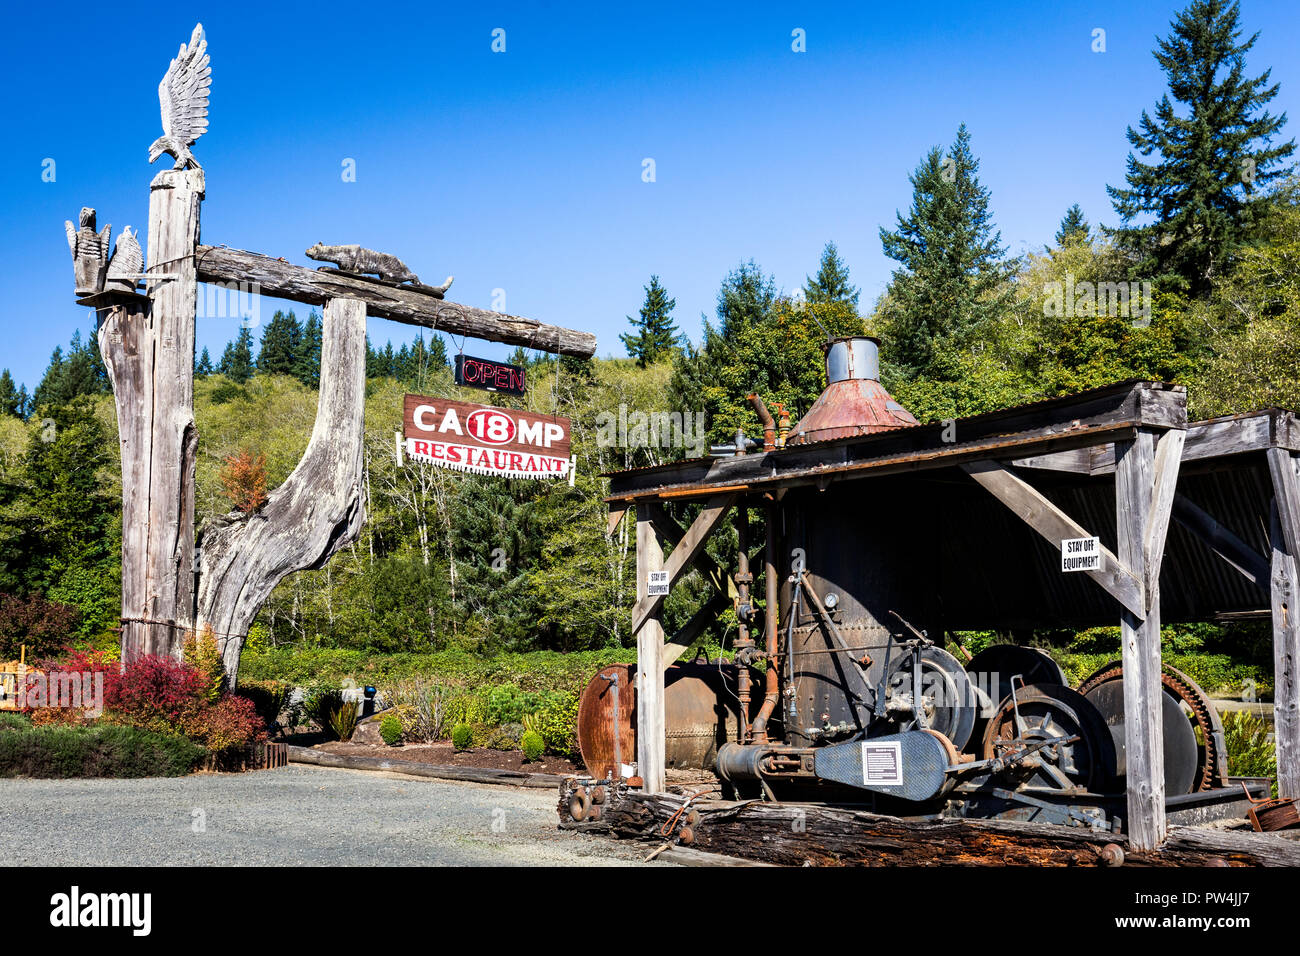 The popular Camp 18 restaurant with its lumberjack theme on Highway 26 heading to the ocean from Portland, Oregon, USA. - Stock Image